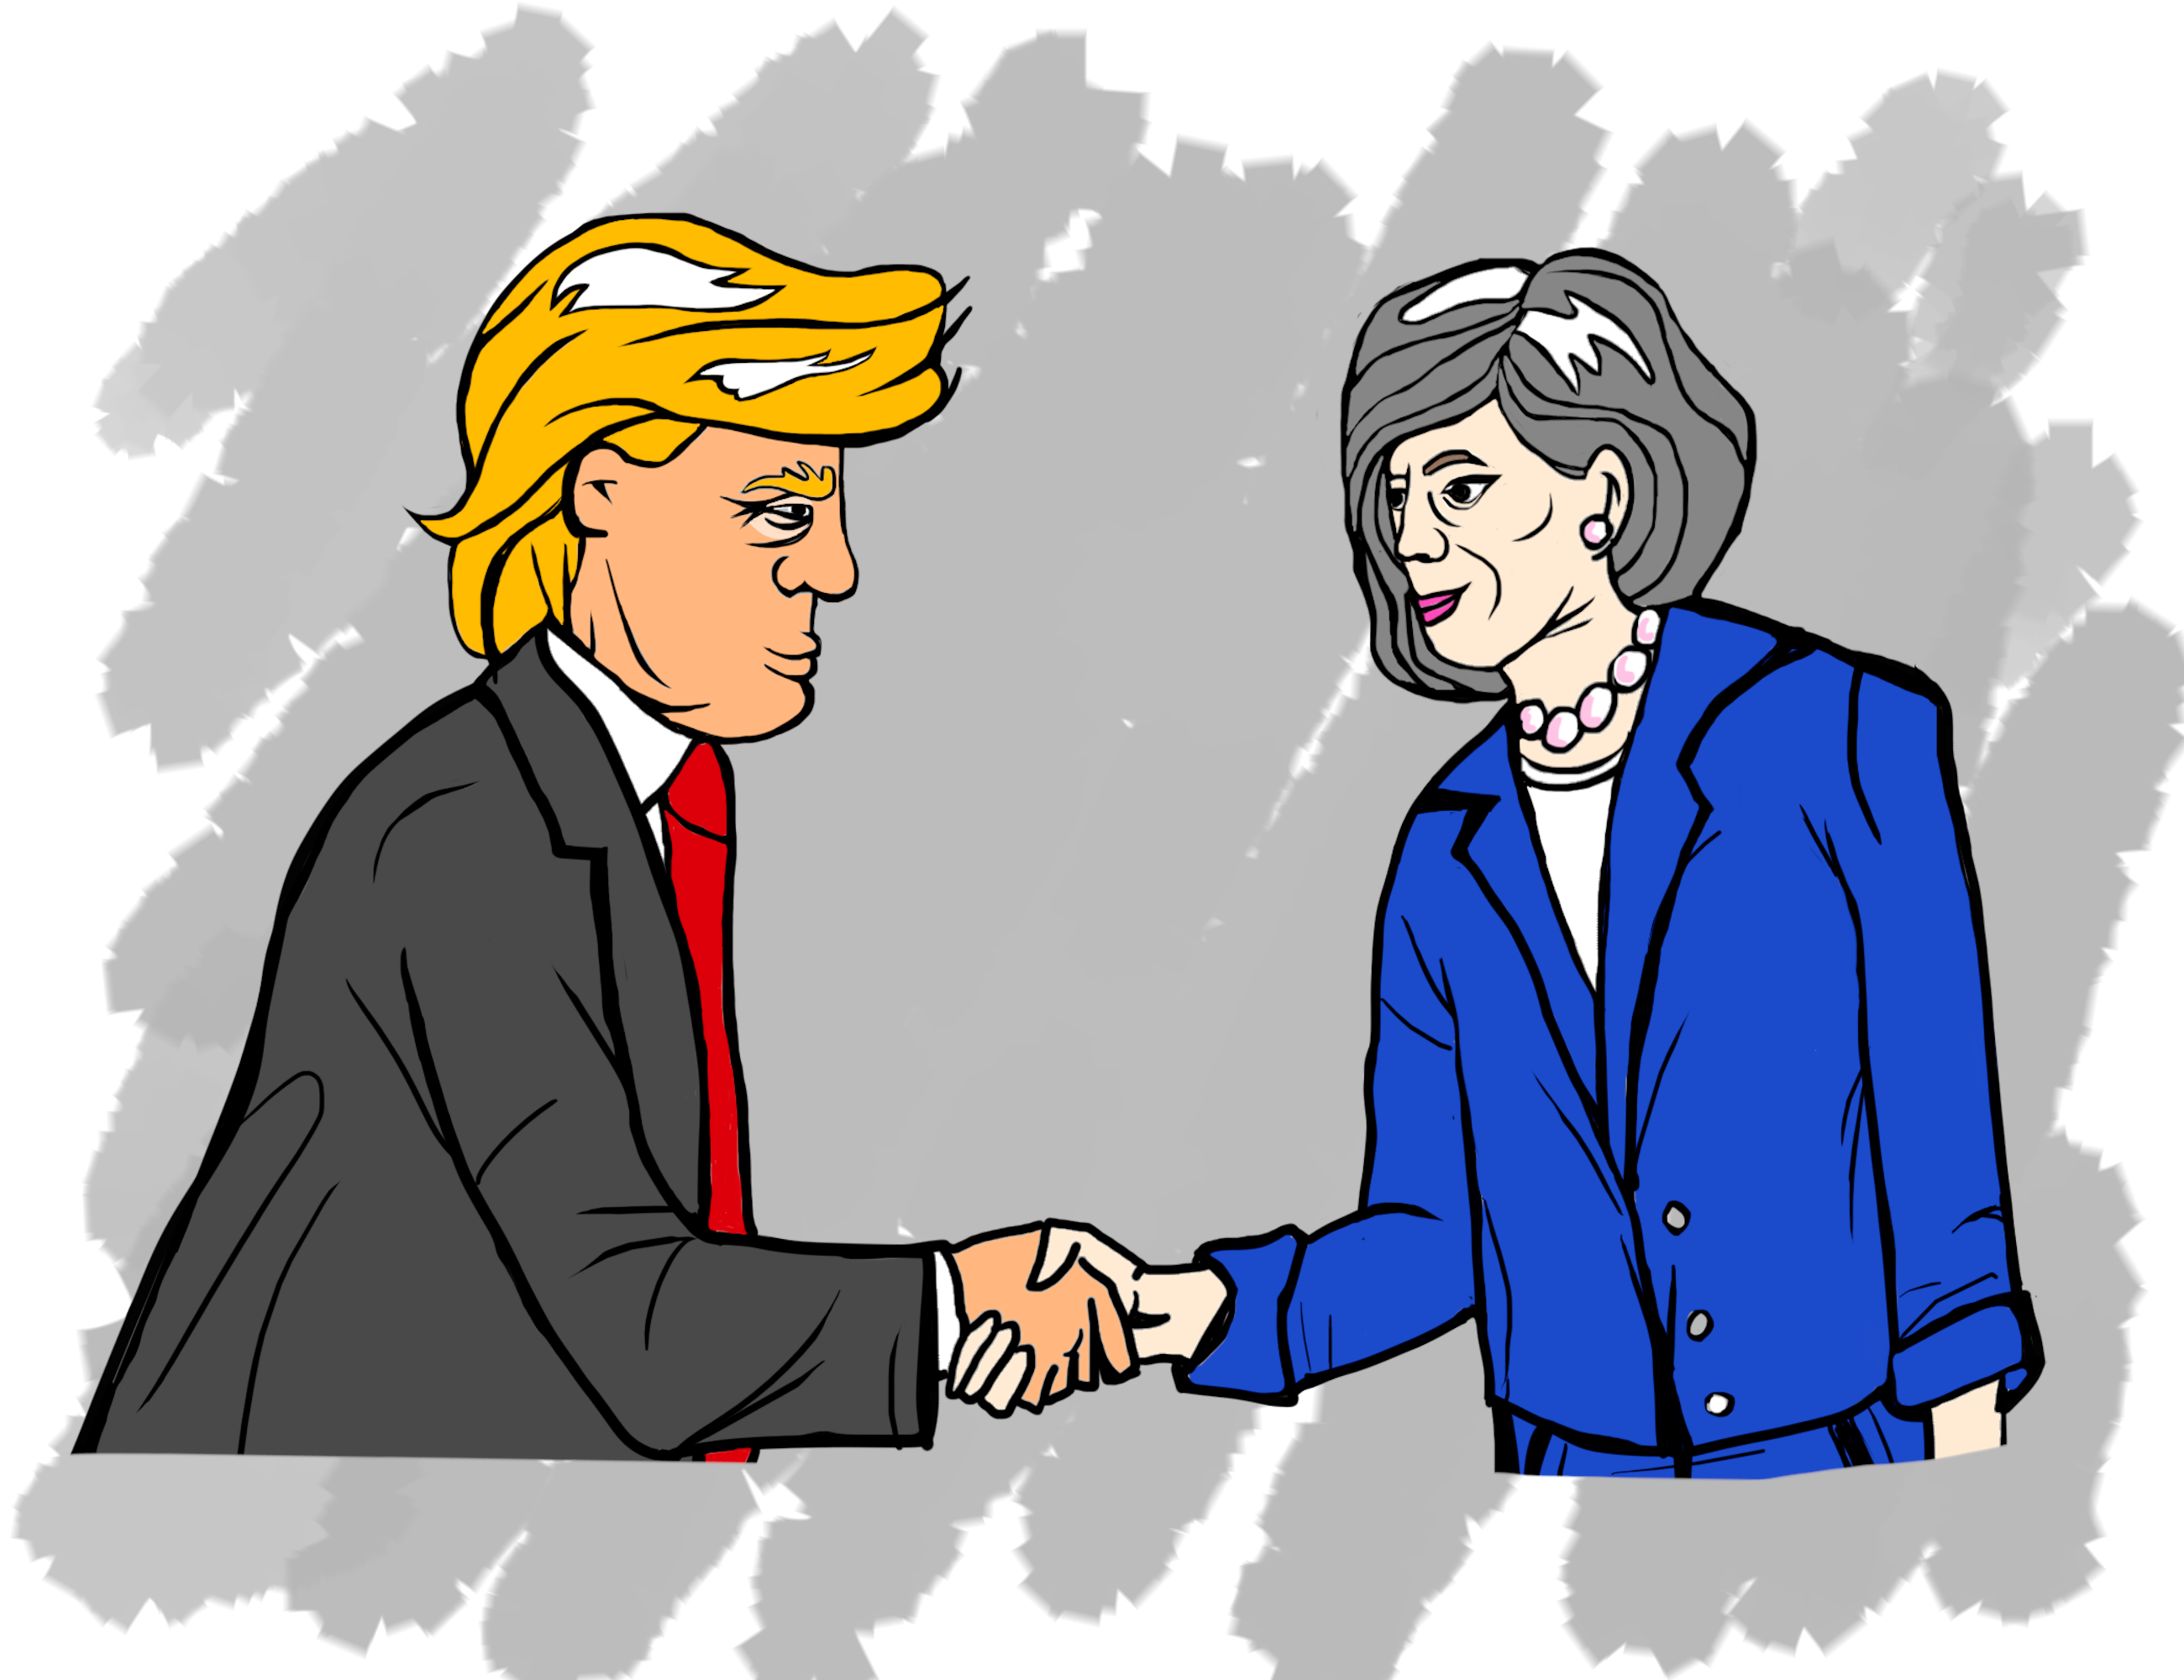 Theresa the Appeaser's New Friend